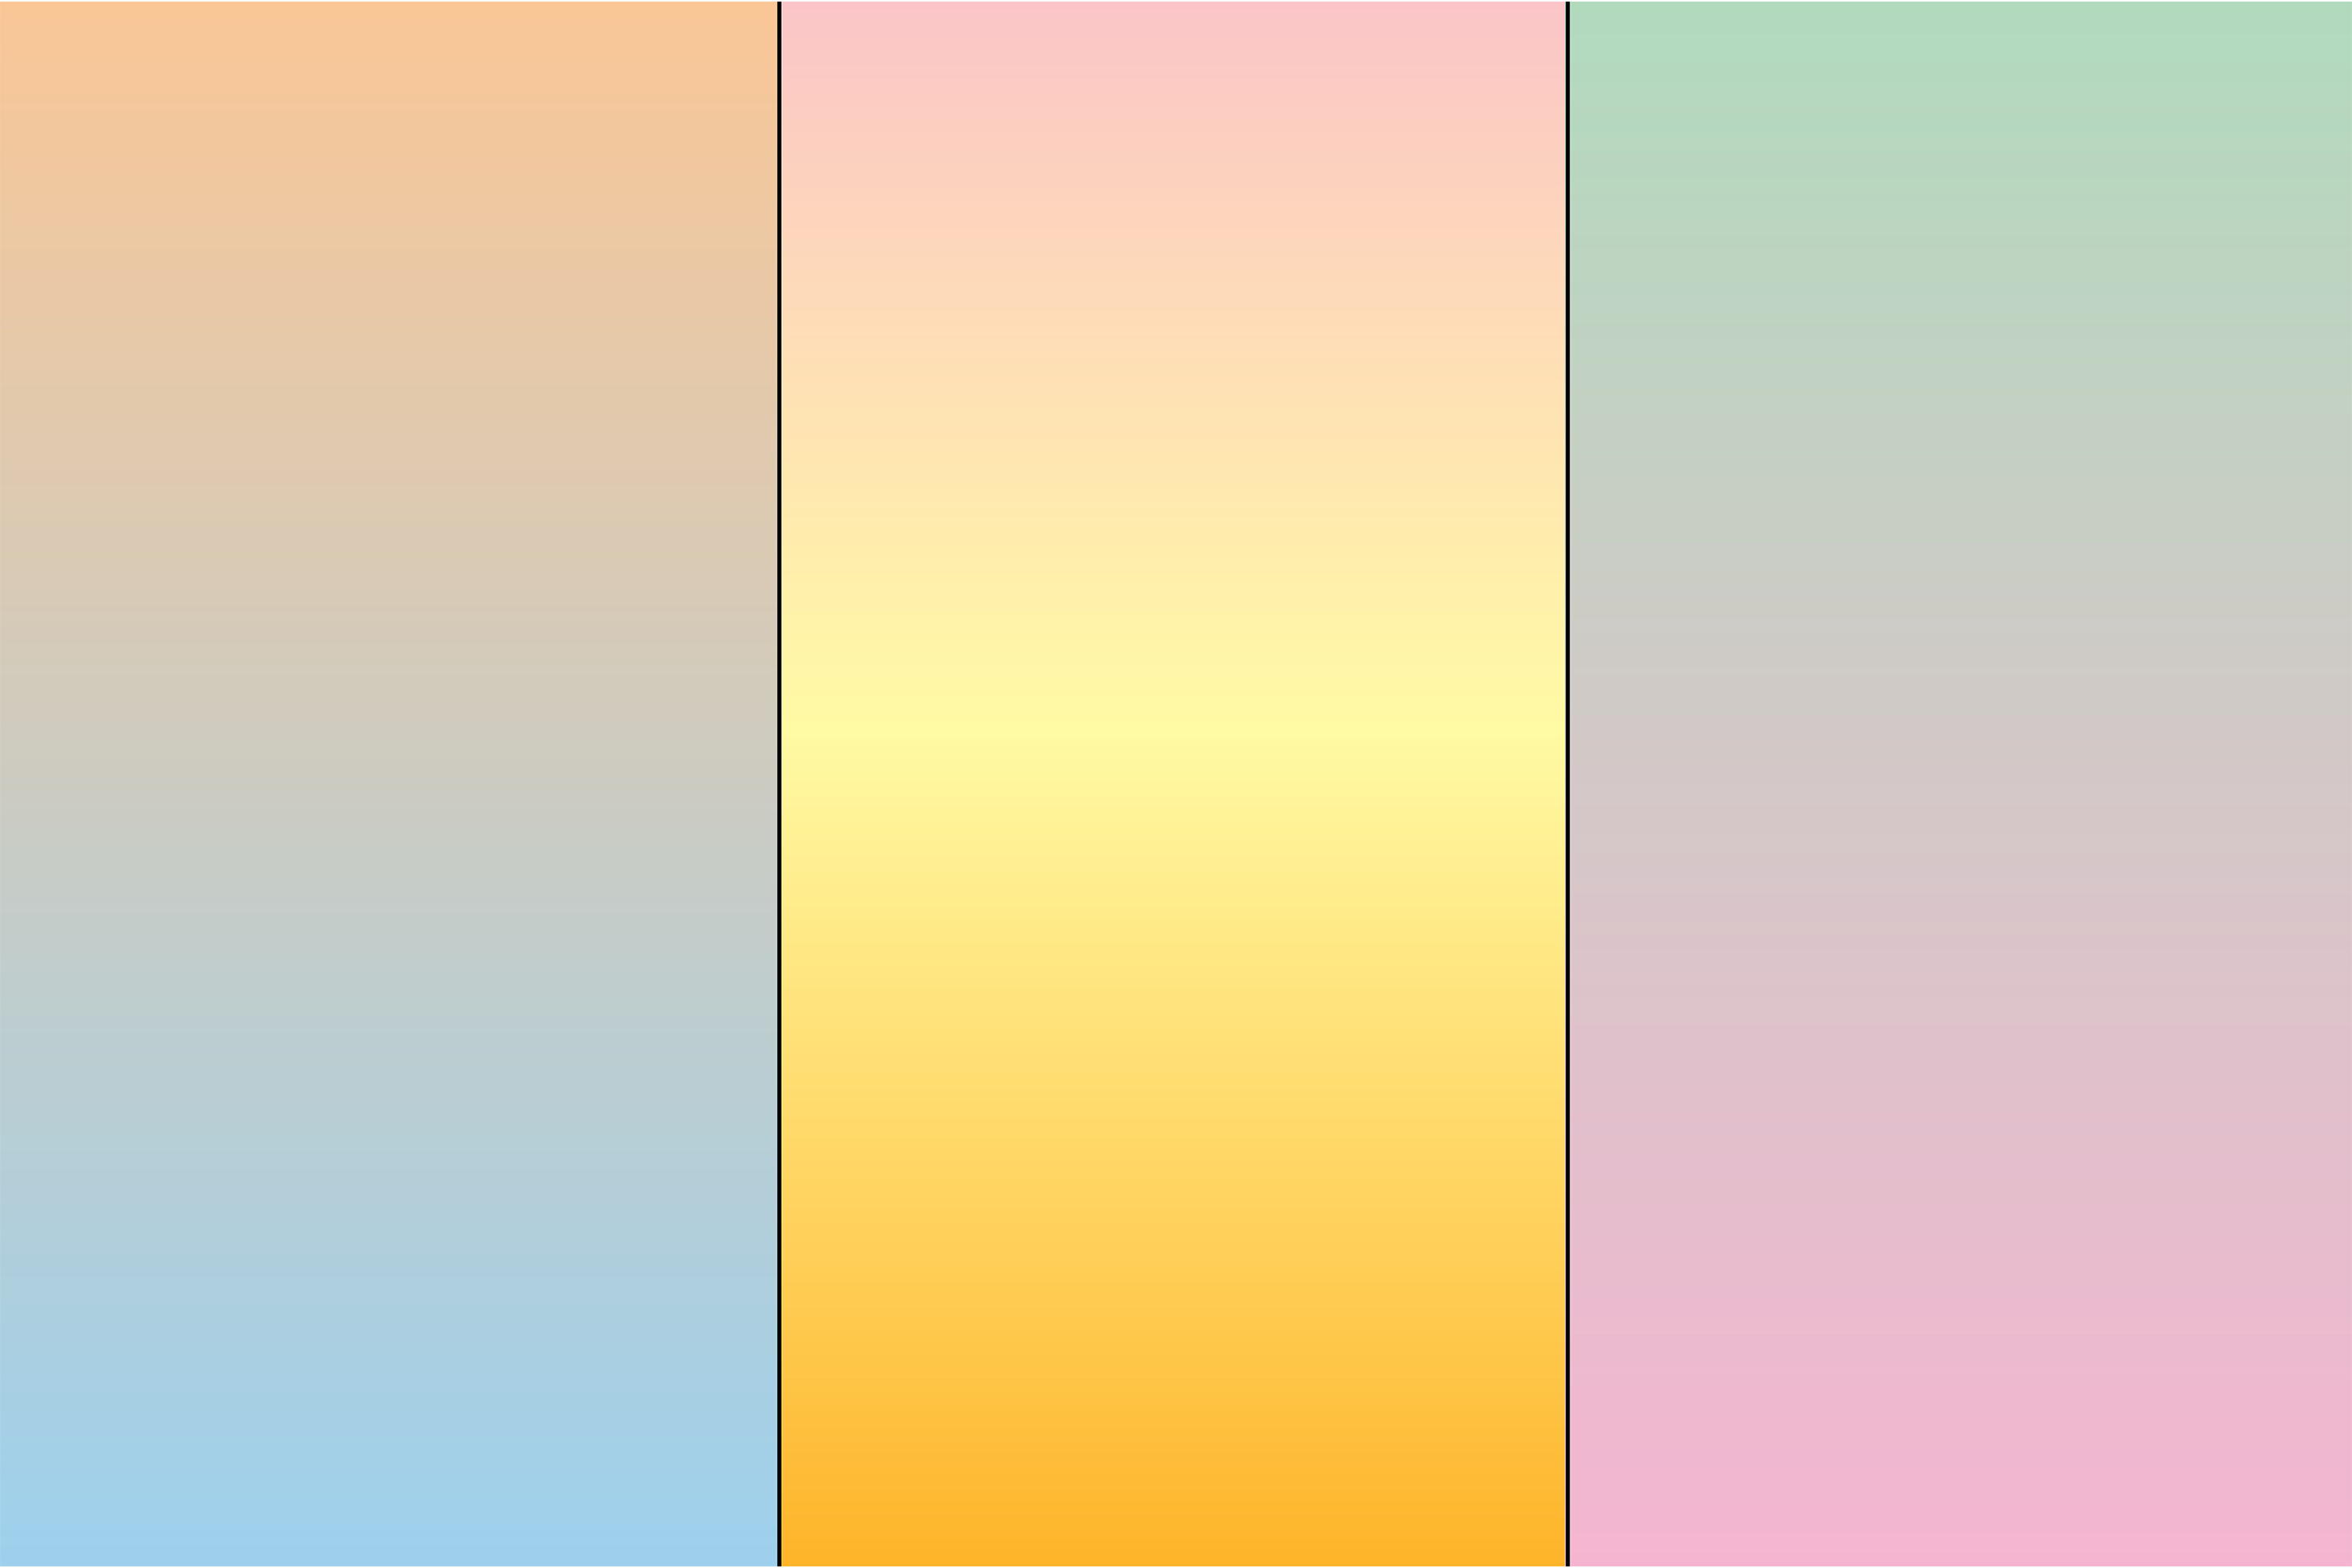 Gradient Sky Backgrounds example image 3